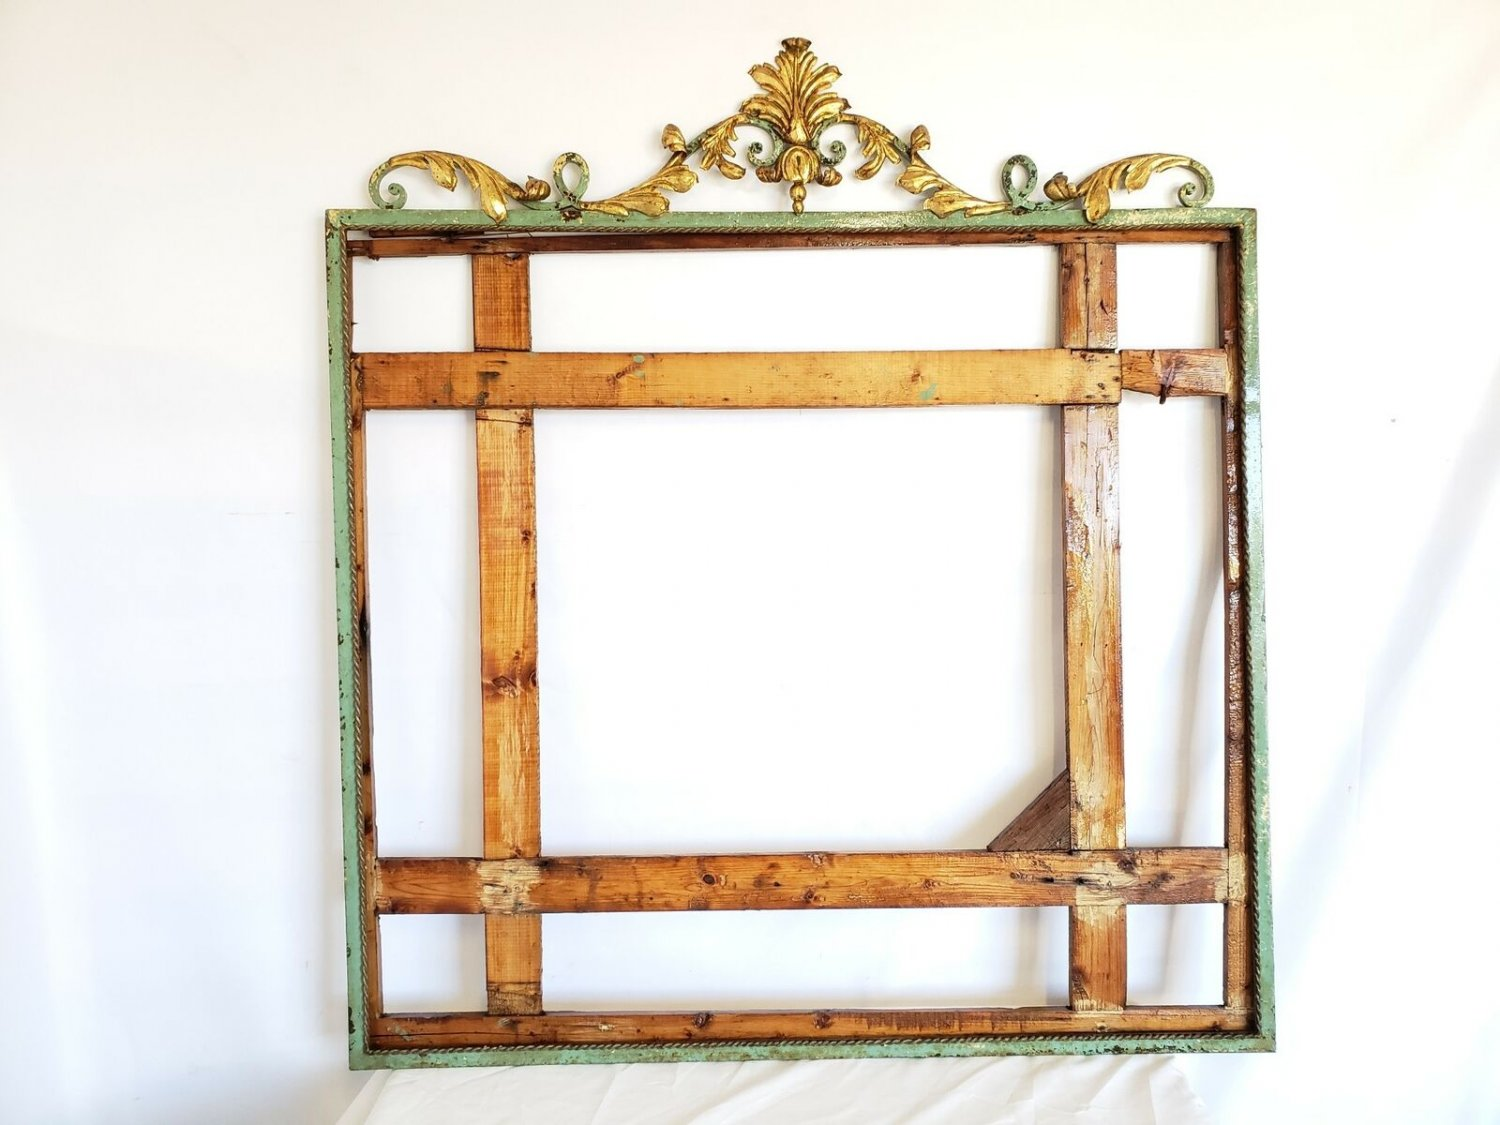 Impressive Large French Antique Wrought Iron Mirror Frame - Gold Gilt Acanthus L